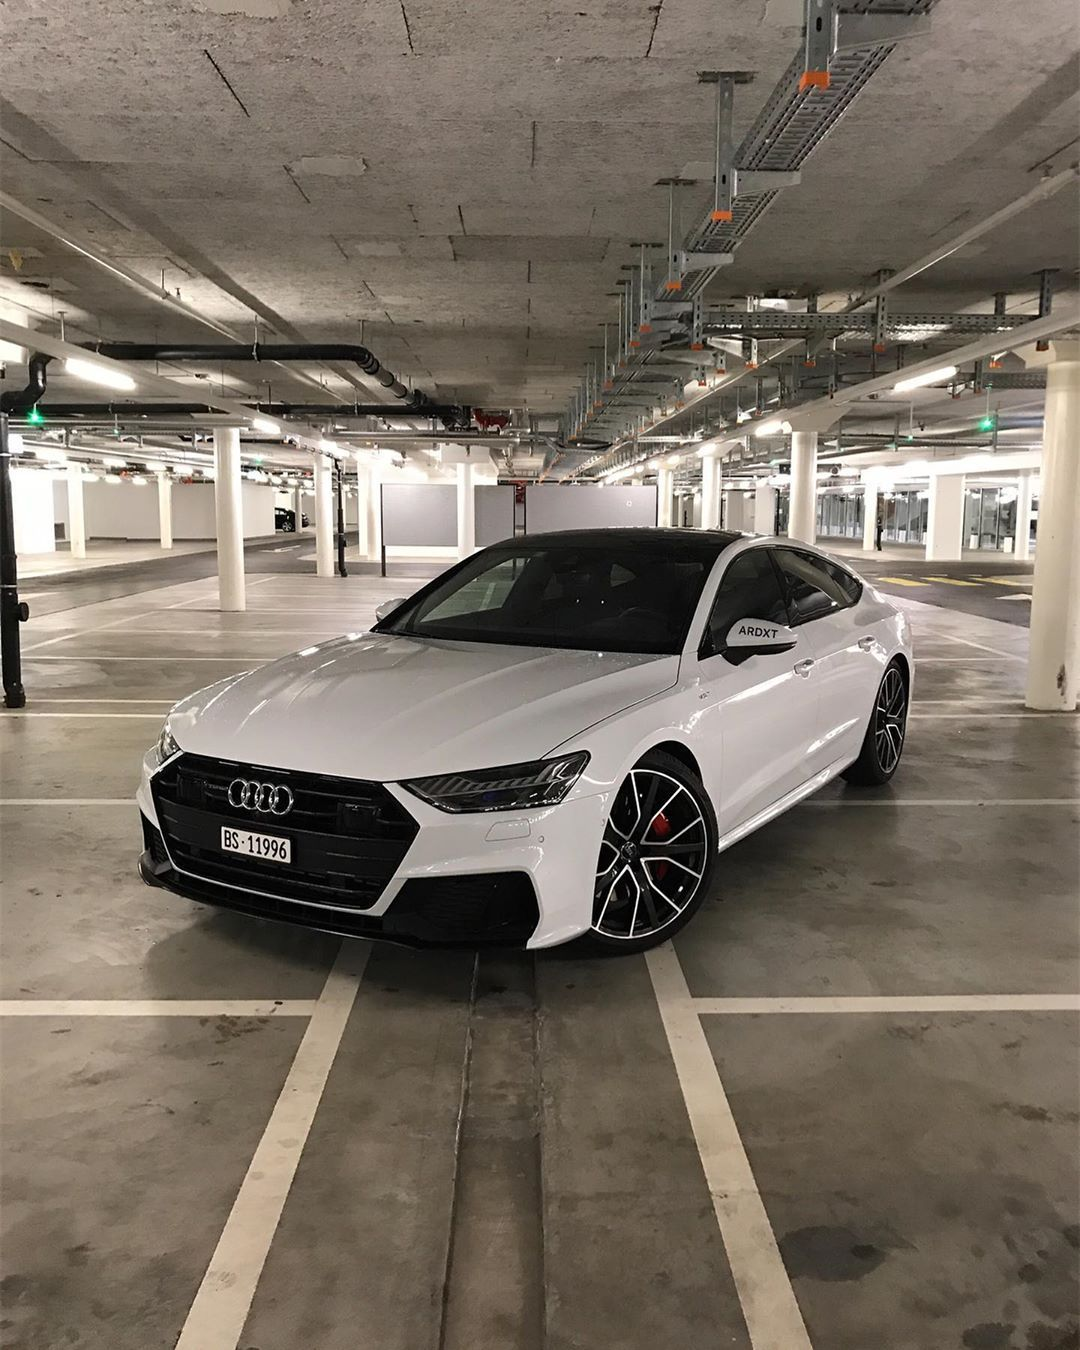 Biggest Audi Fanpage Of Ig On Instagram Underground A7 Supercar Owner Ardxt Follow Supercar For More Audi A7 Qu Super Cars Audi Audi Cars